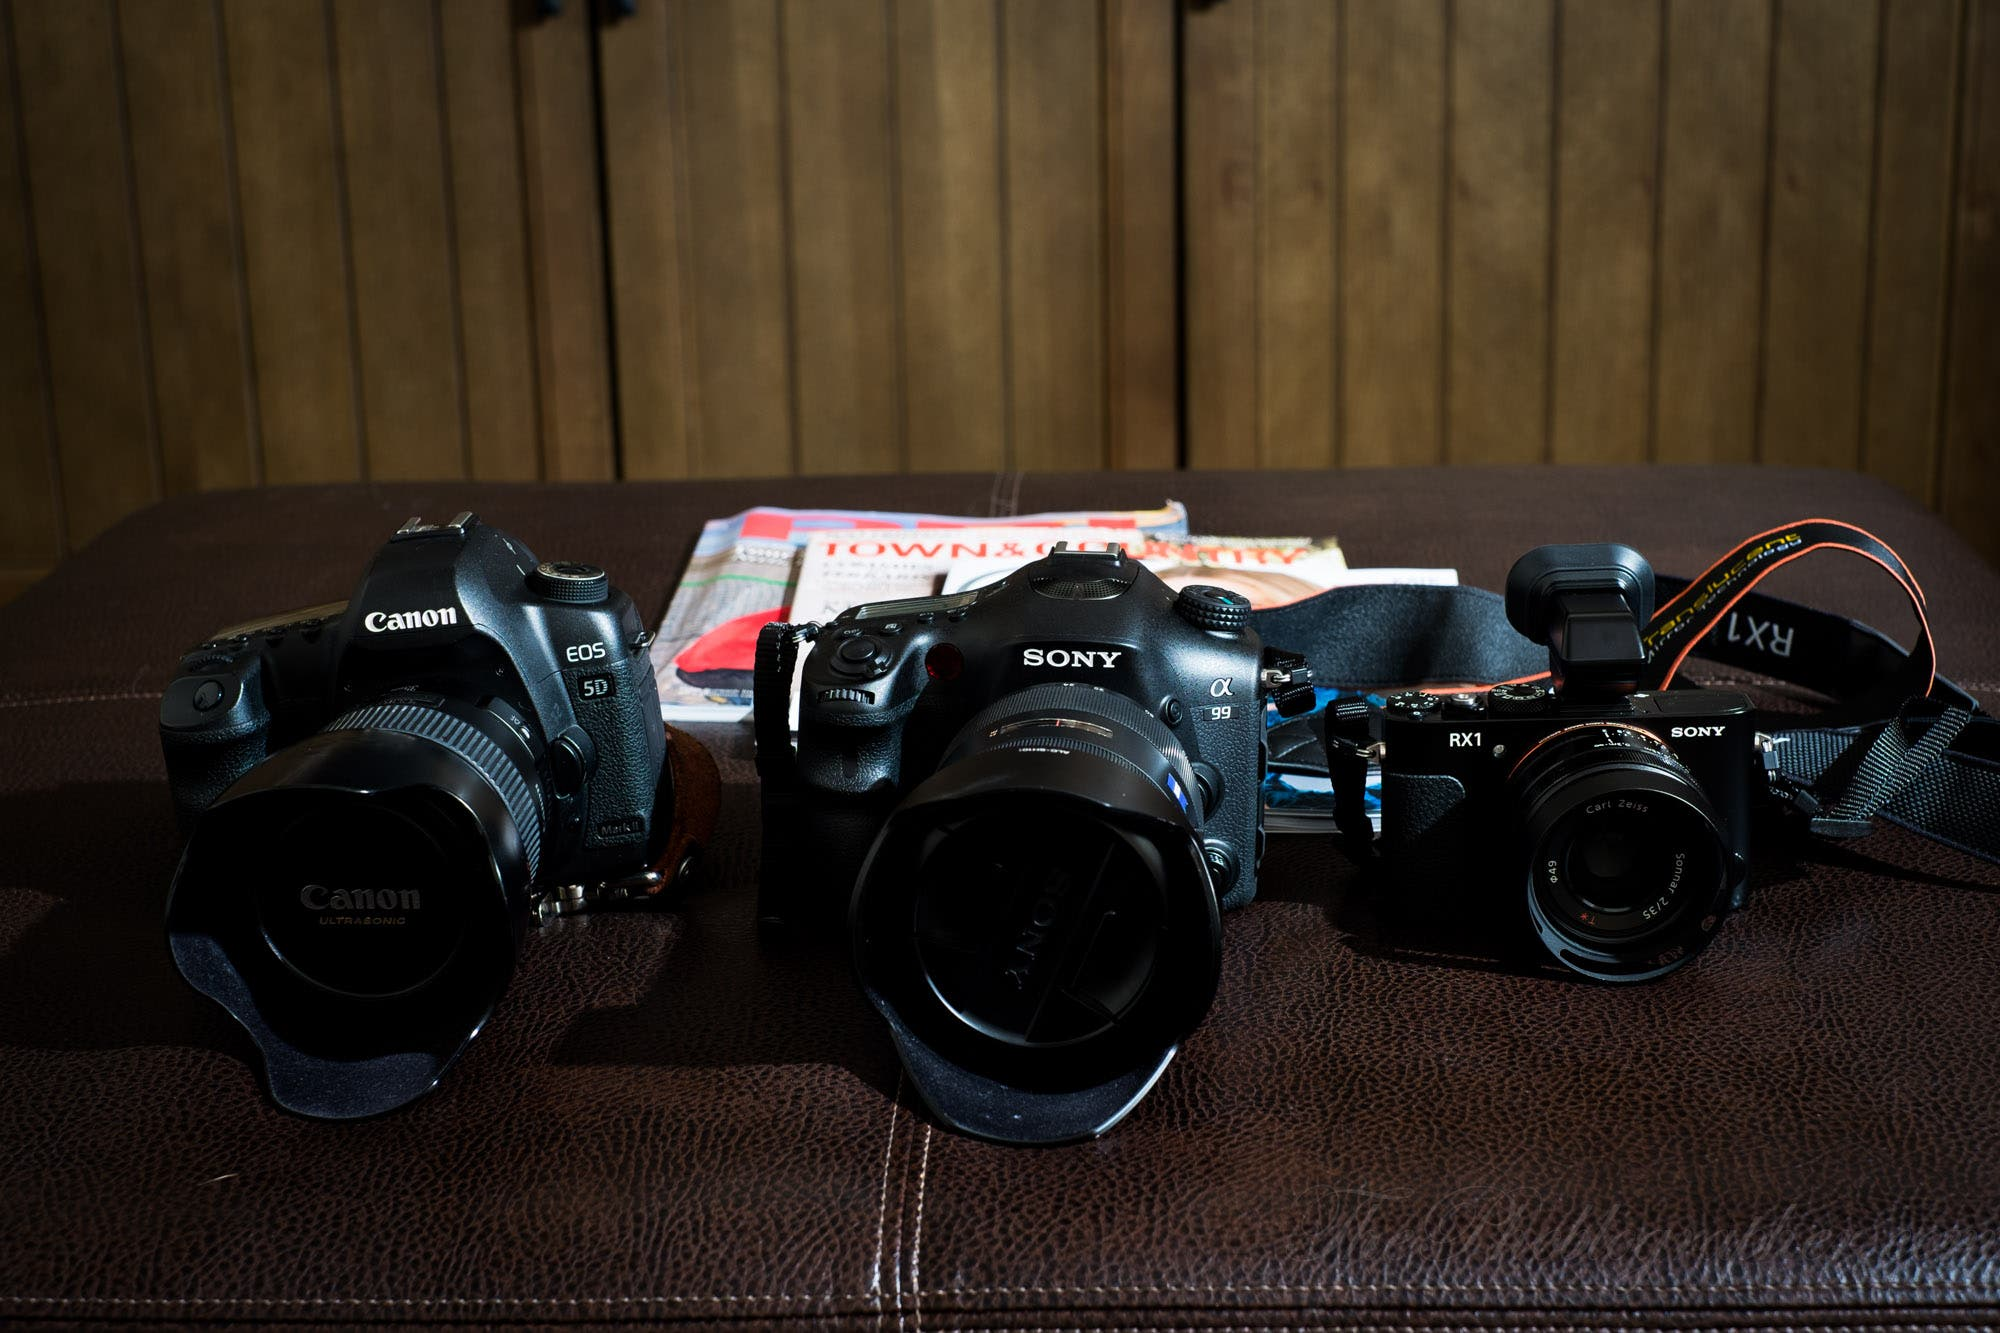 Quick Unscientific High ISO Comparison: Canon 5D Mk II, Sony A99, and Sony RX-1